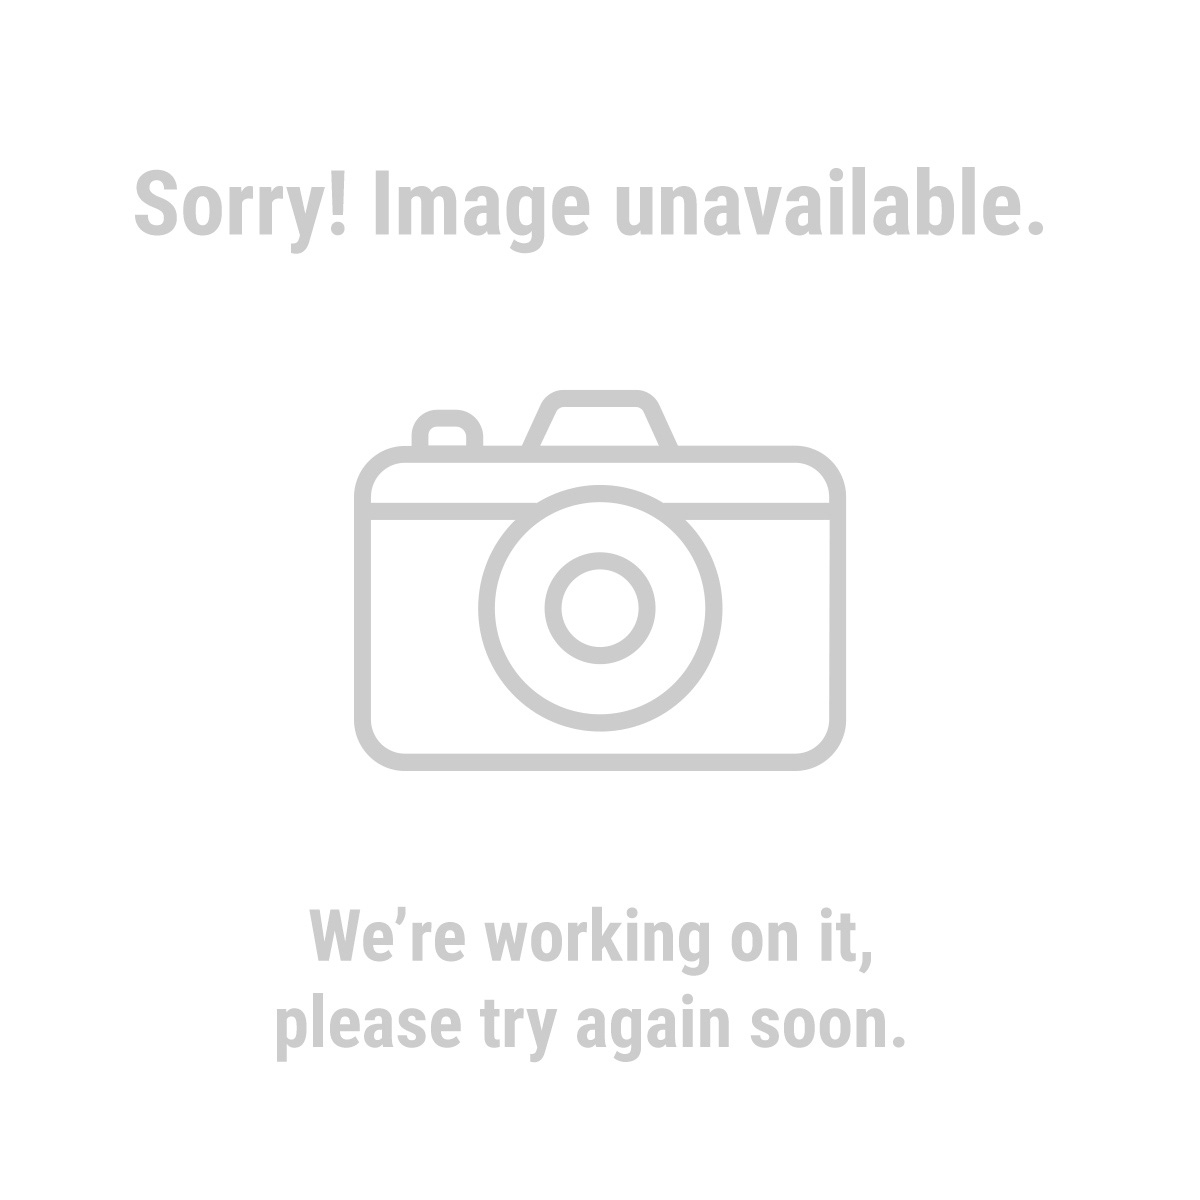 battery chargers harbor freight  battery  free engine